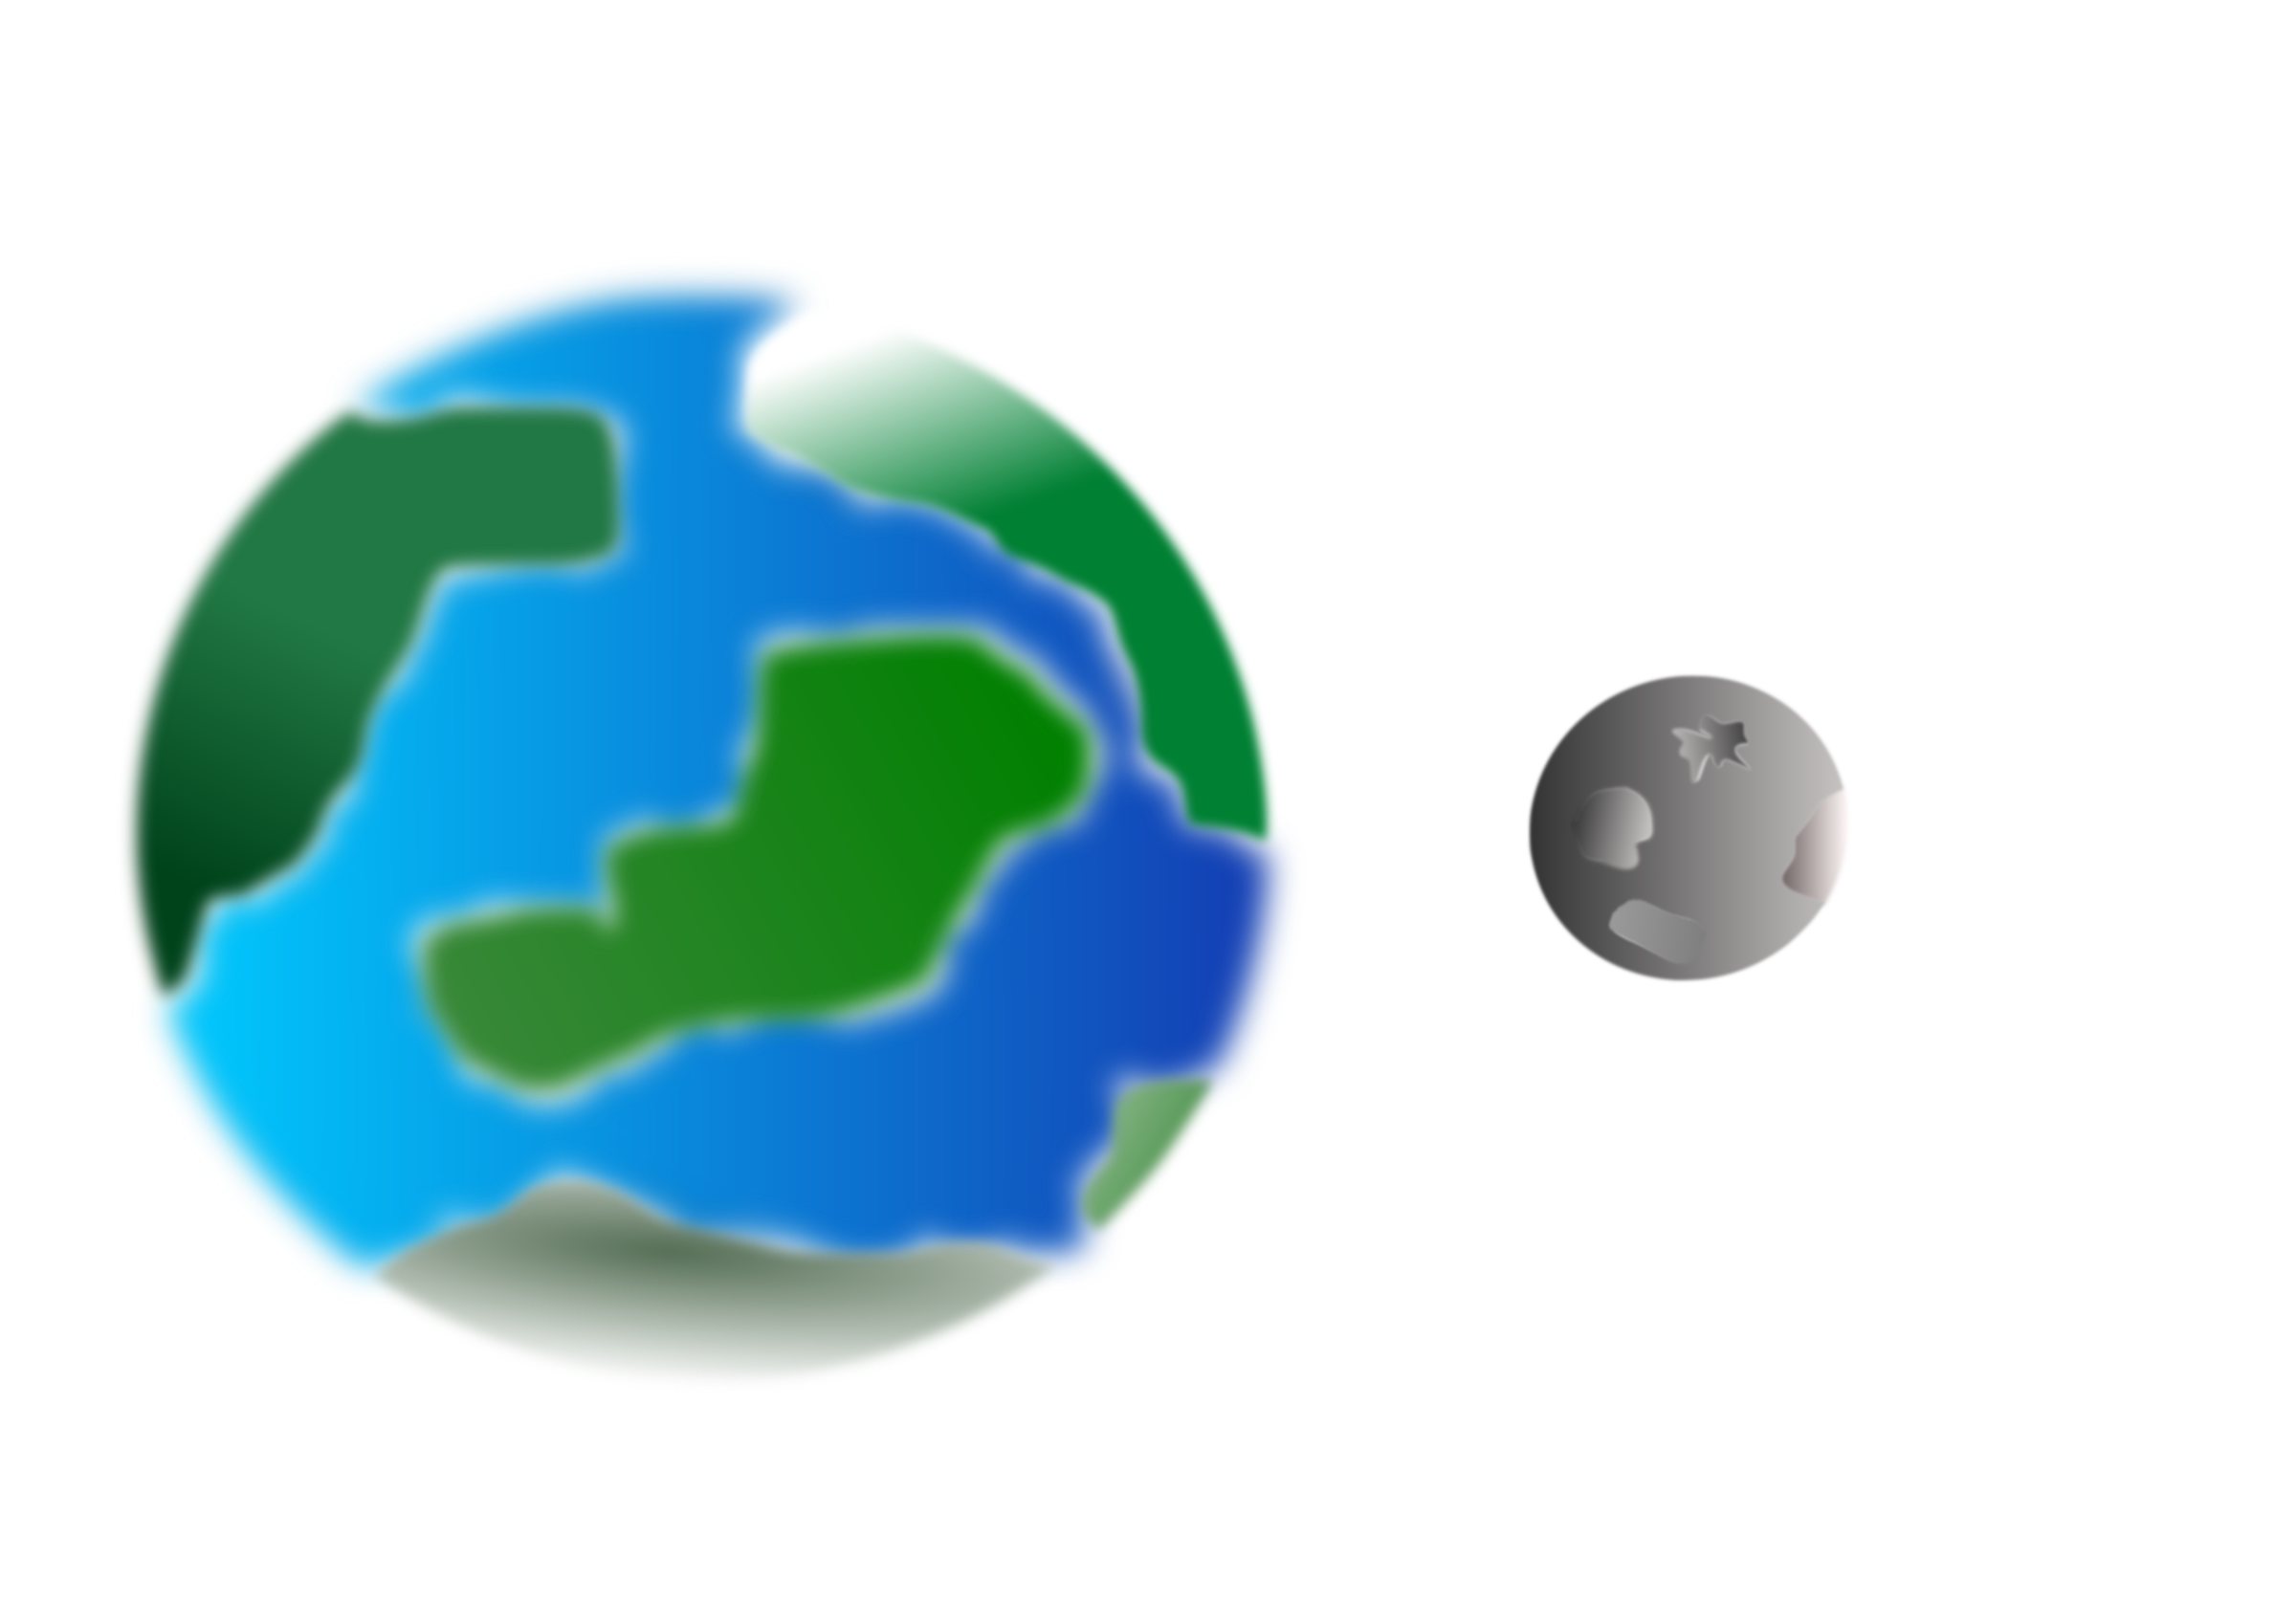 Cosmos clipart earth moon With with Planet Planet moon